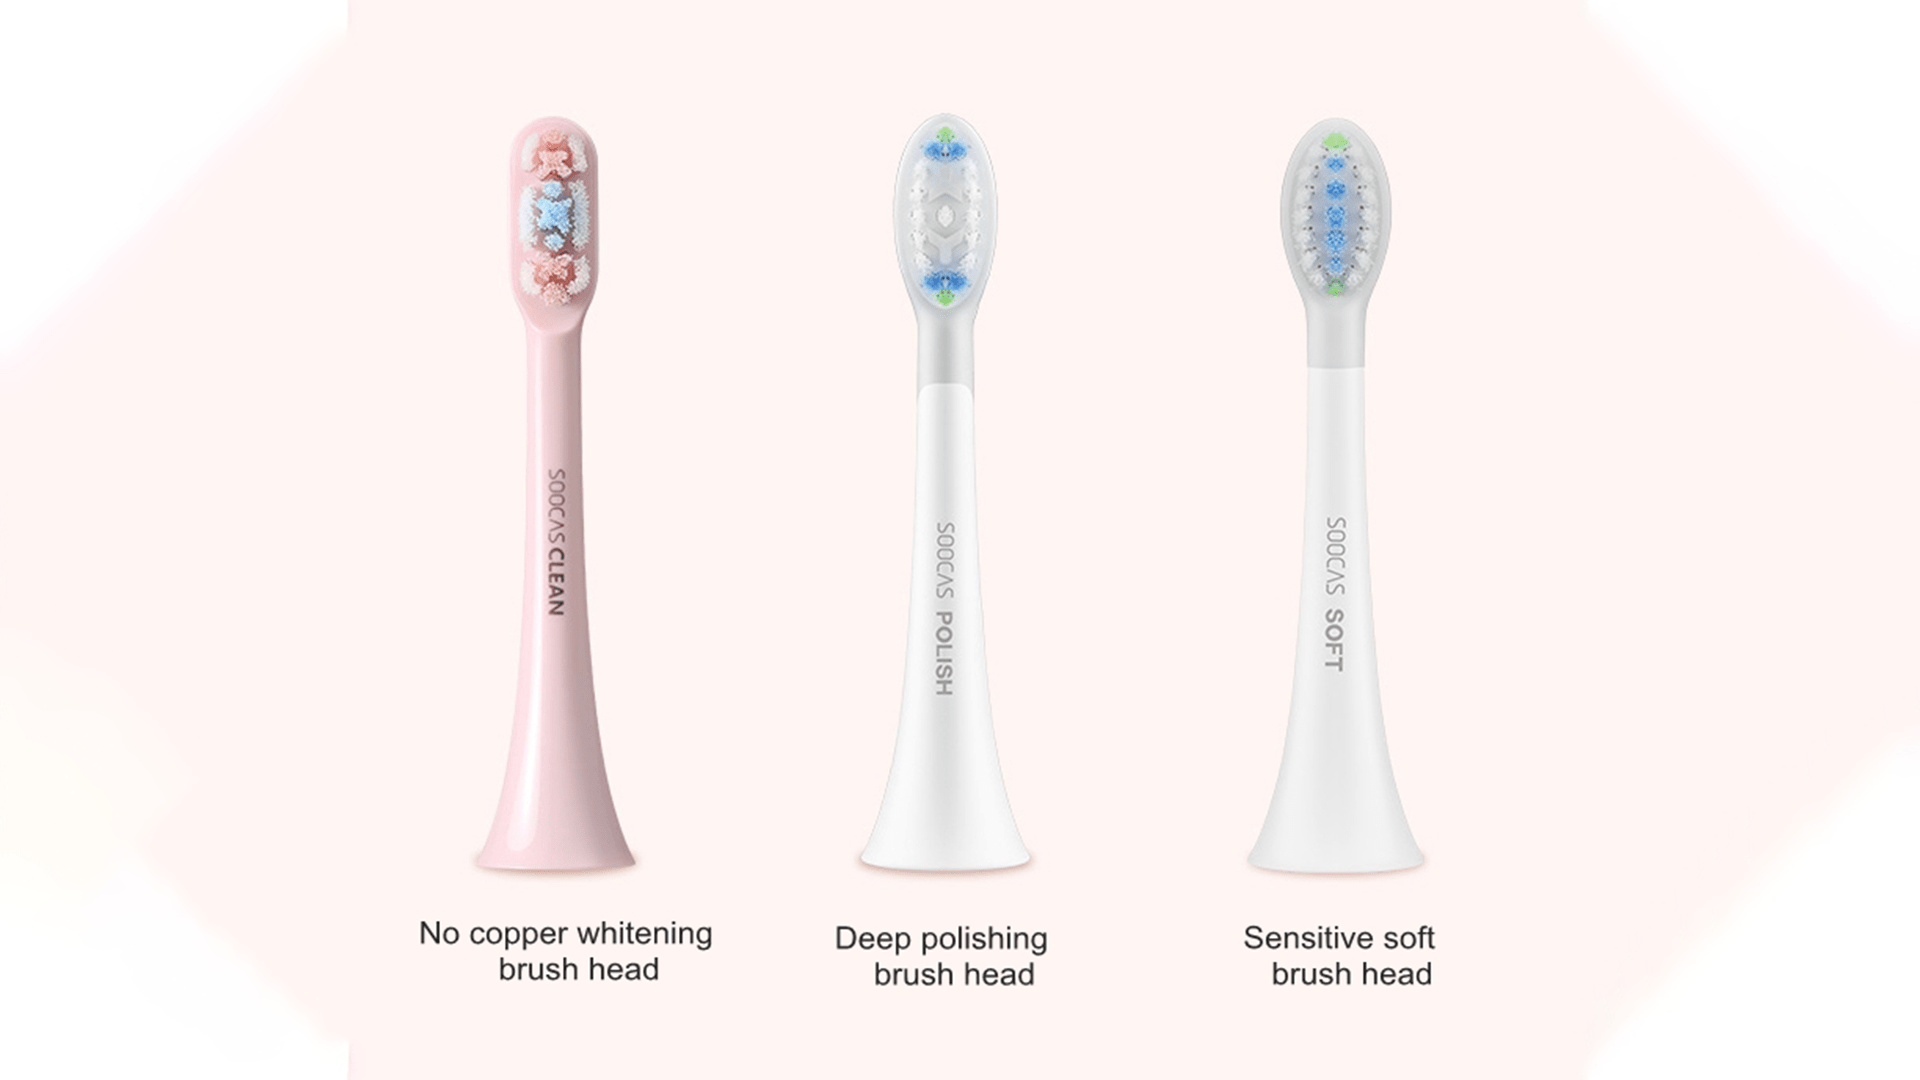 Sonic Electric Toothbrush X3U 7 - Sneapy